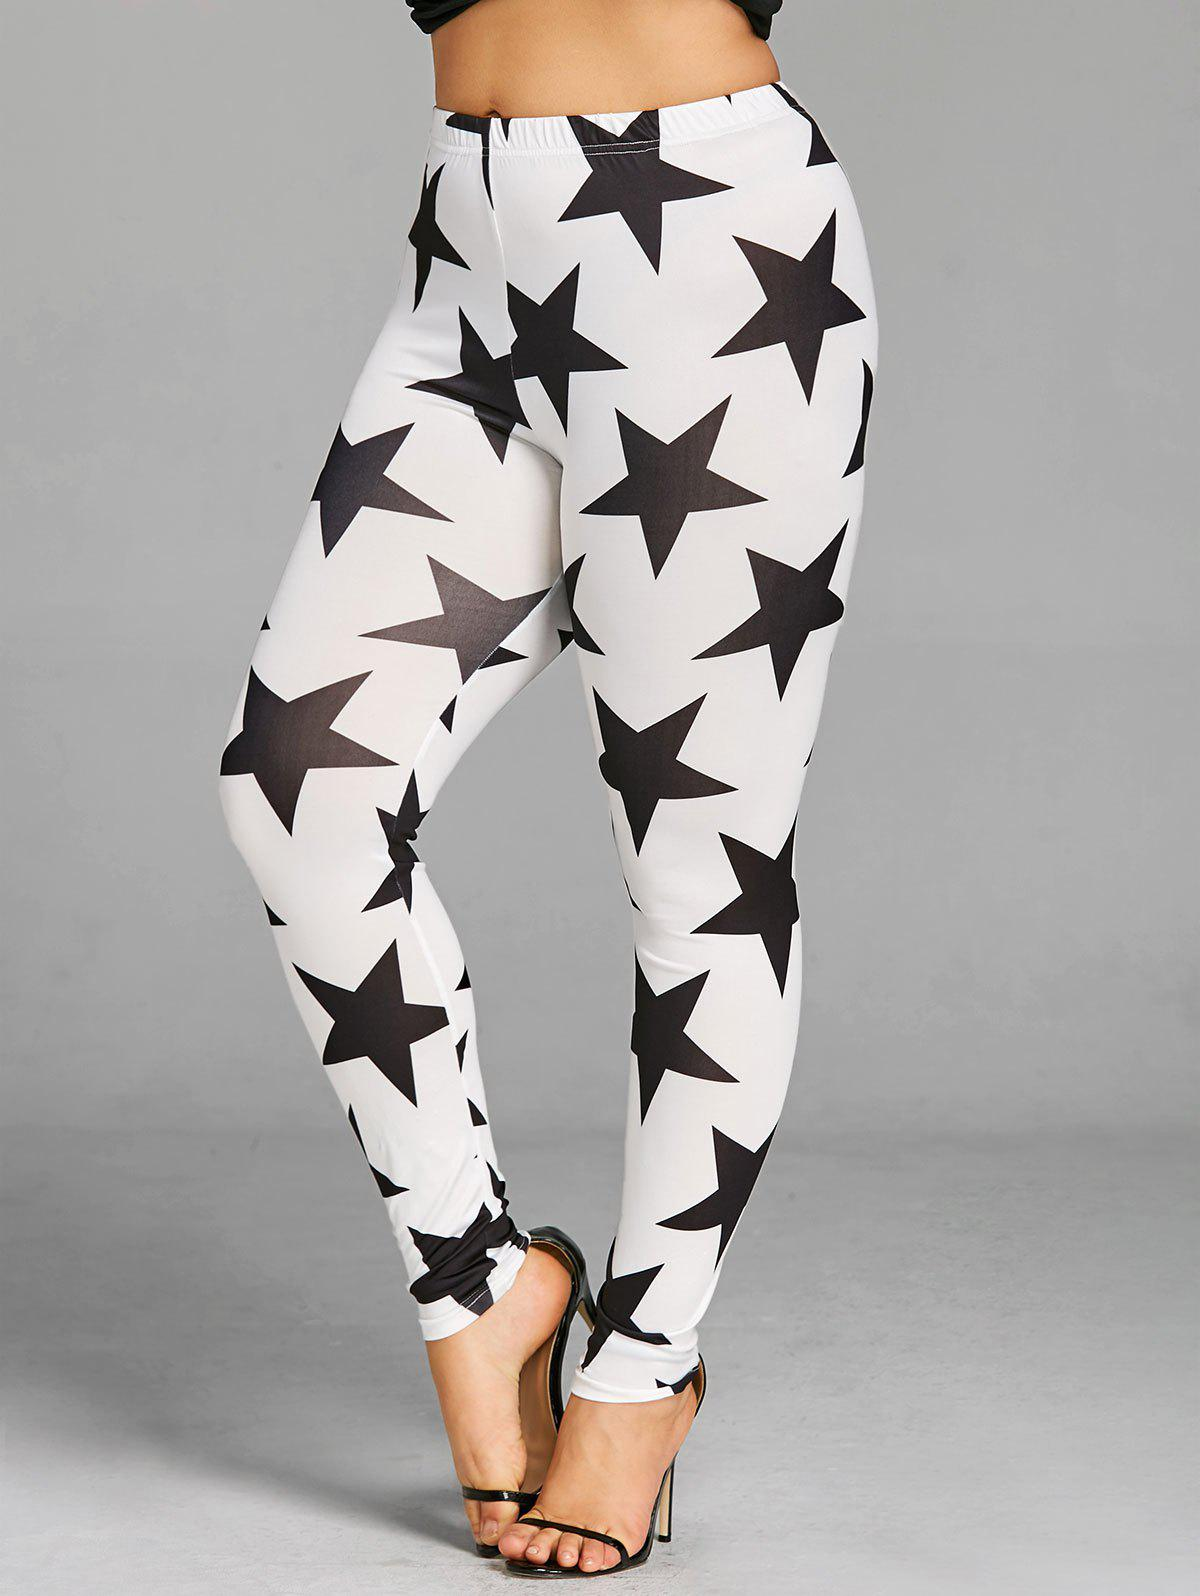 Plus Size Star Graphic Leggings - WHITE/BLACK 5XL